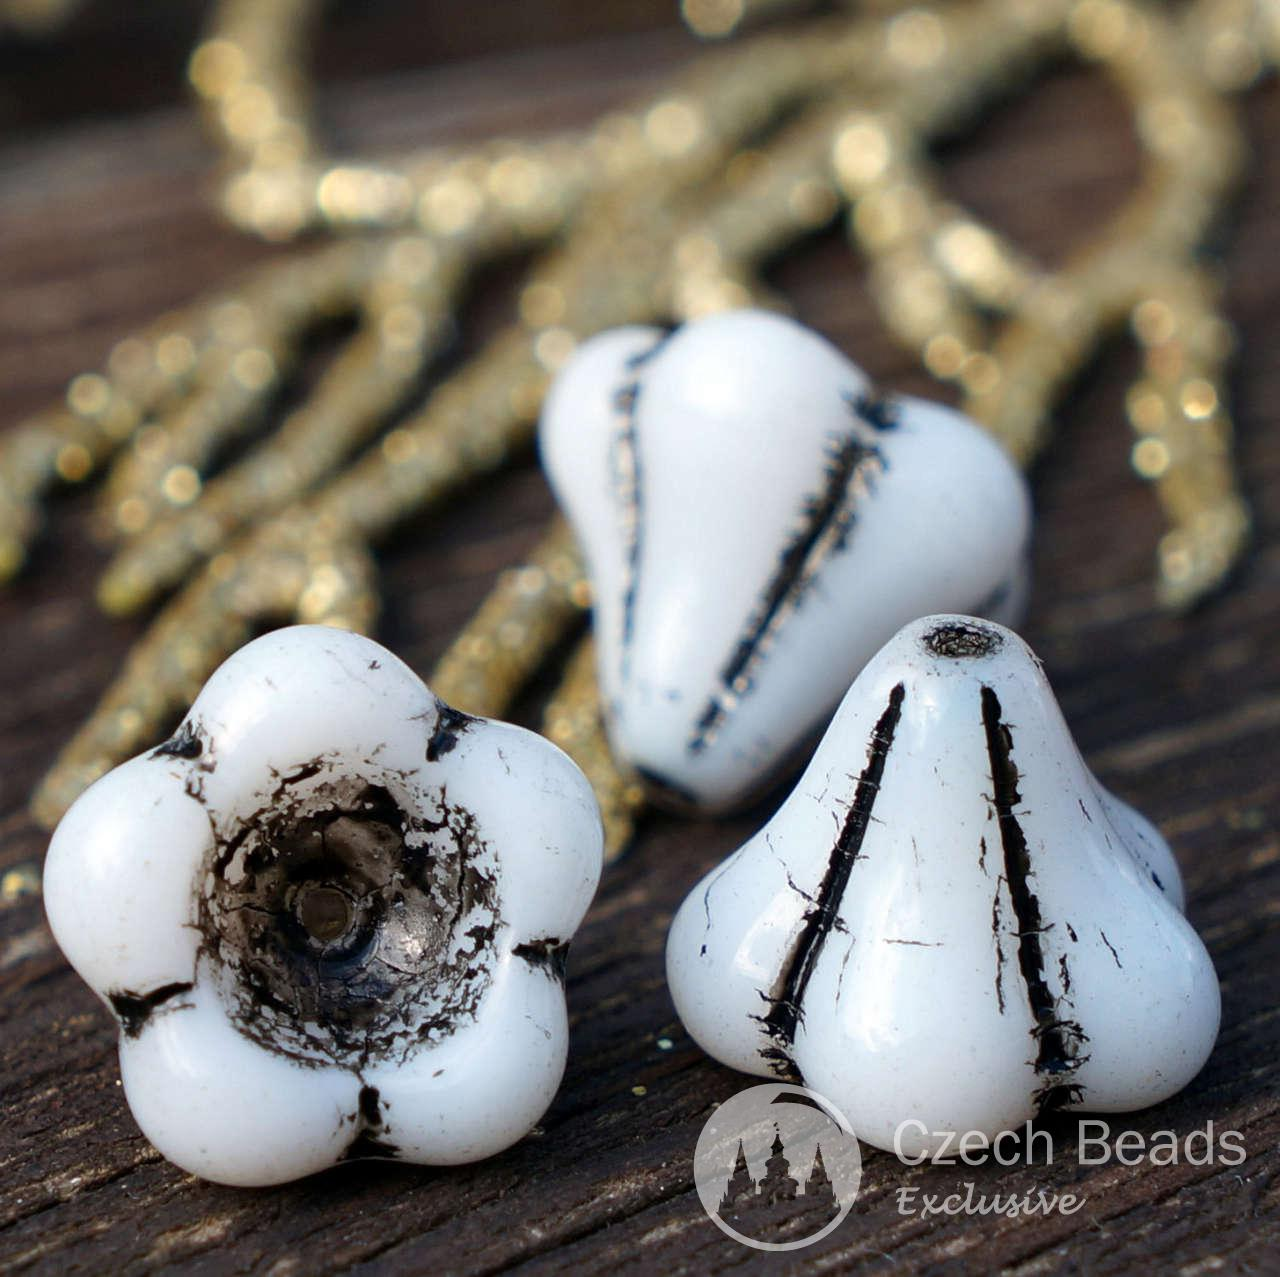 Large Black White Bell Flower Czech Glass Beads Flower Bead Caps Bohemian Beads Glass Flower Beads Czech Flower Halloween Beads 12mm 6pcs for $2.4 from Czech Beads Exclusive